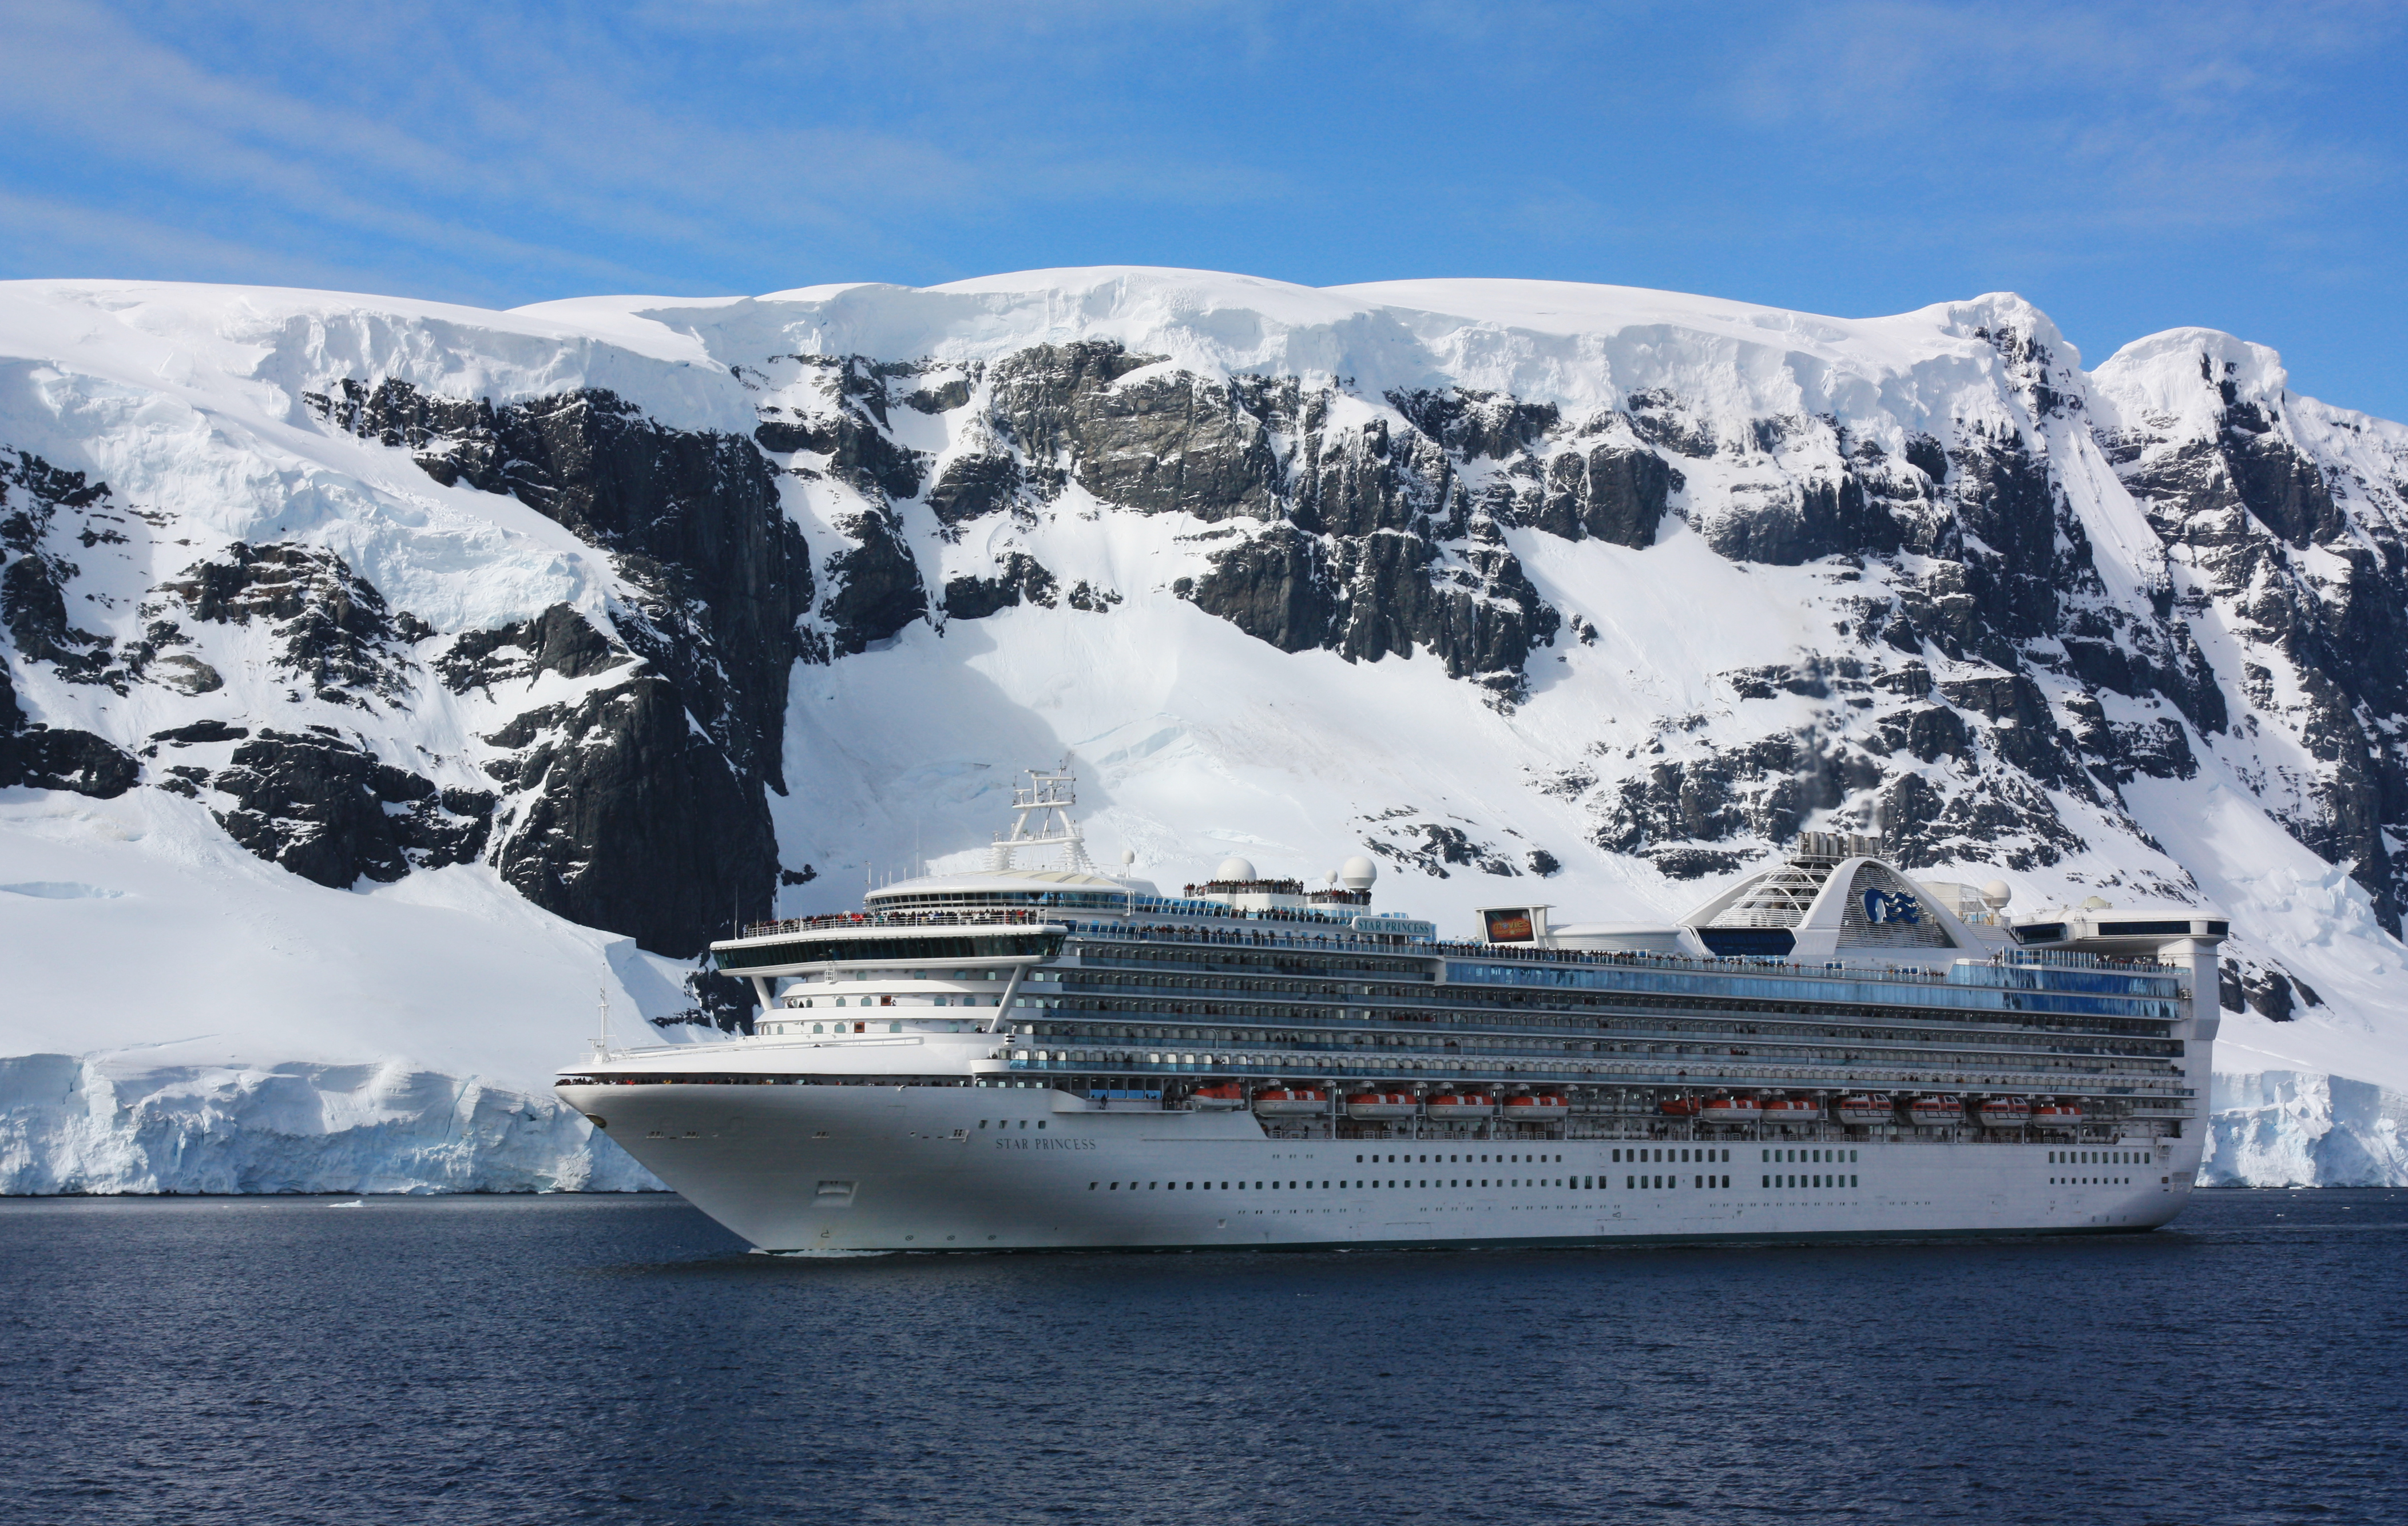 a cruise ship in the Antactic